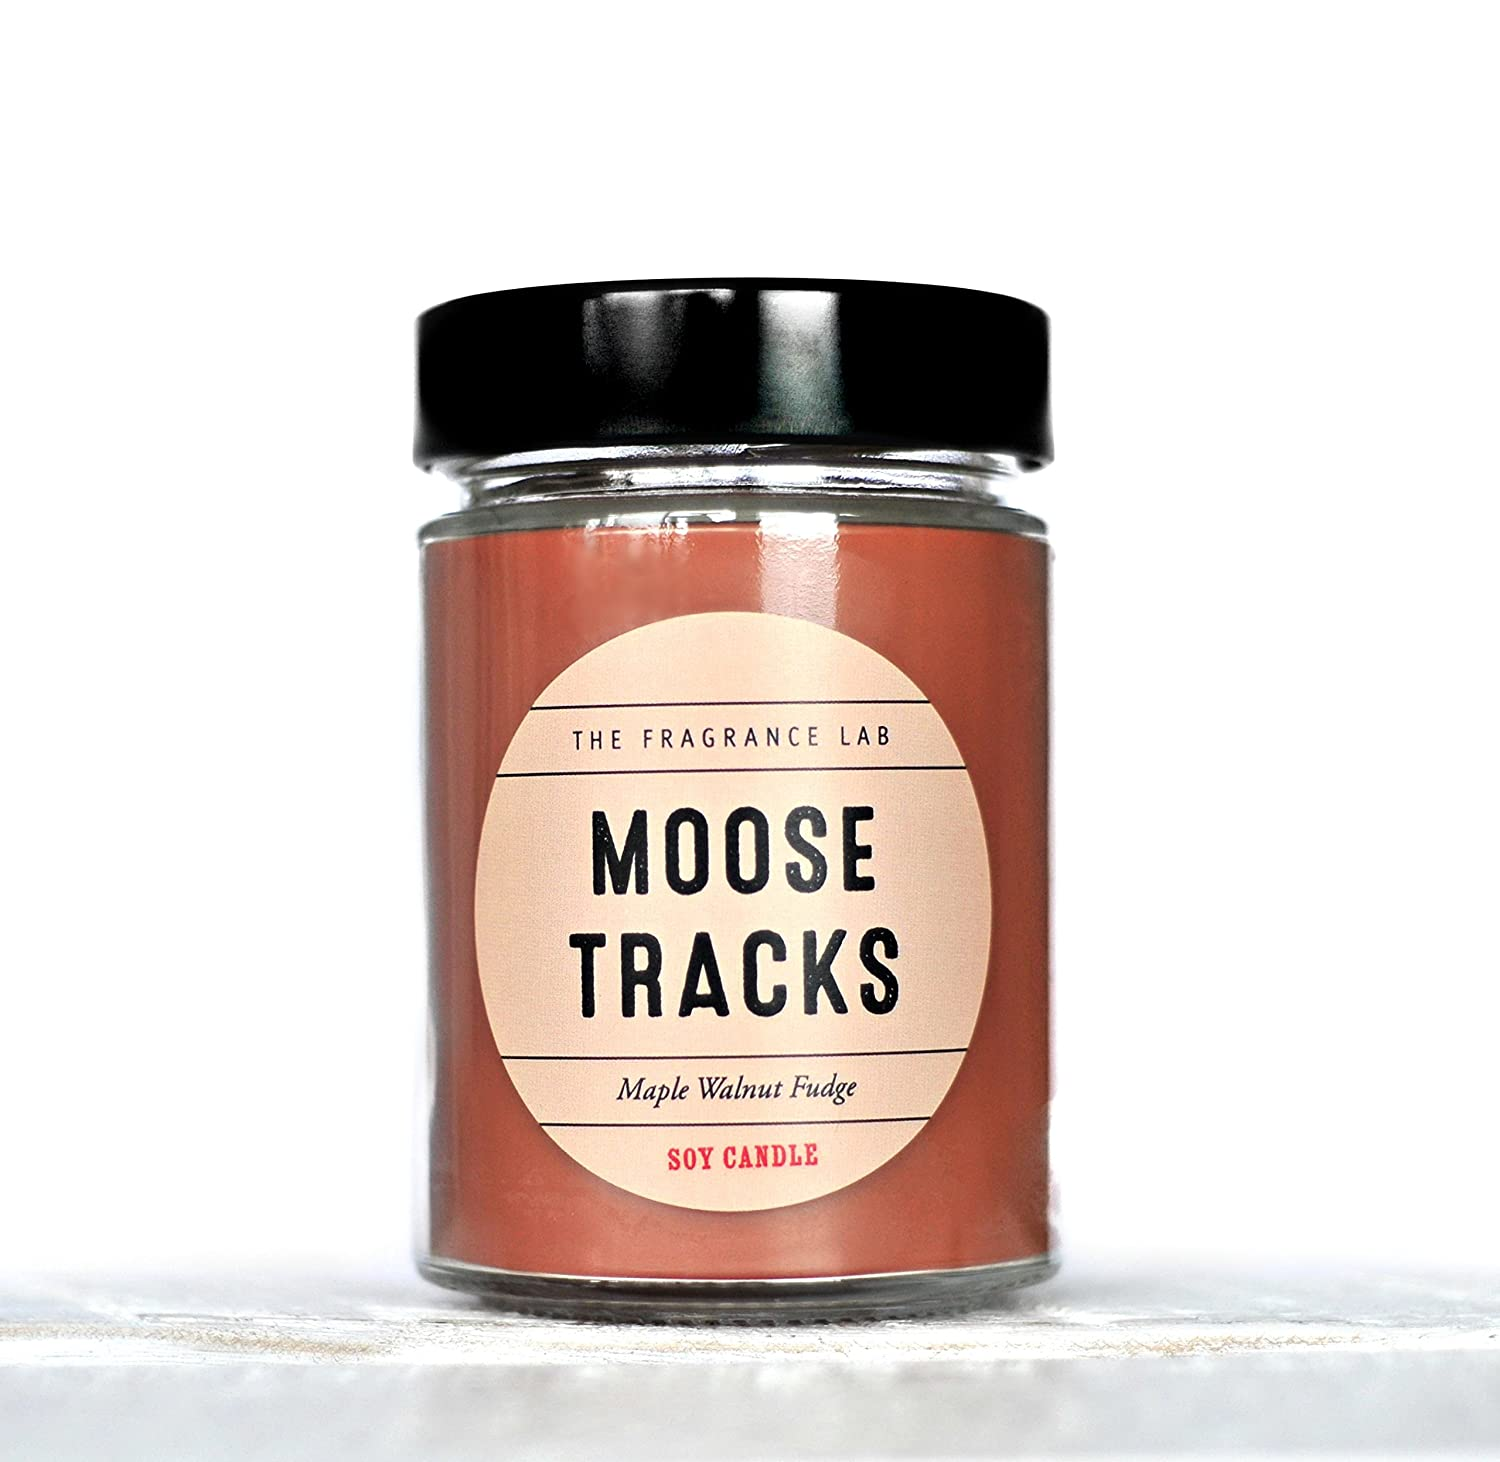 Soy Candle -Moose Tracks Maple Walnut Fudge Scented | The Fragrance Lab